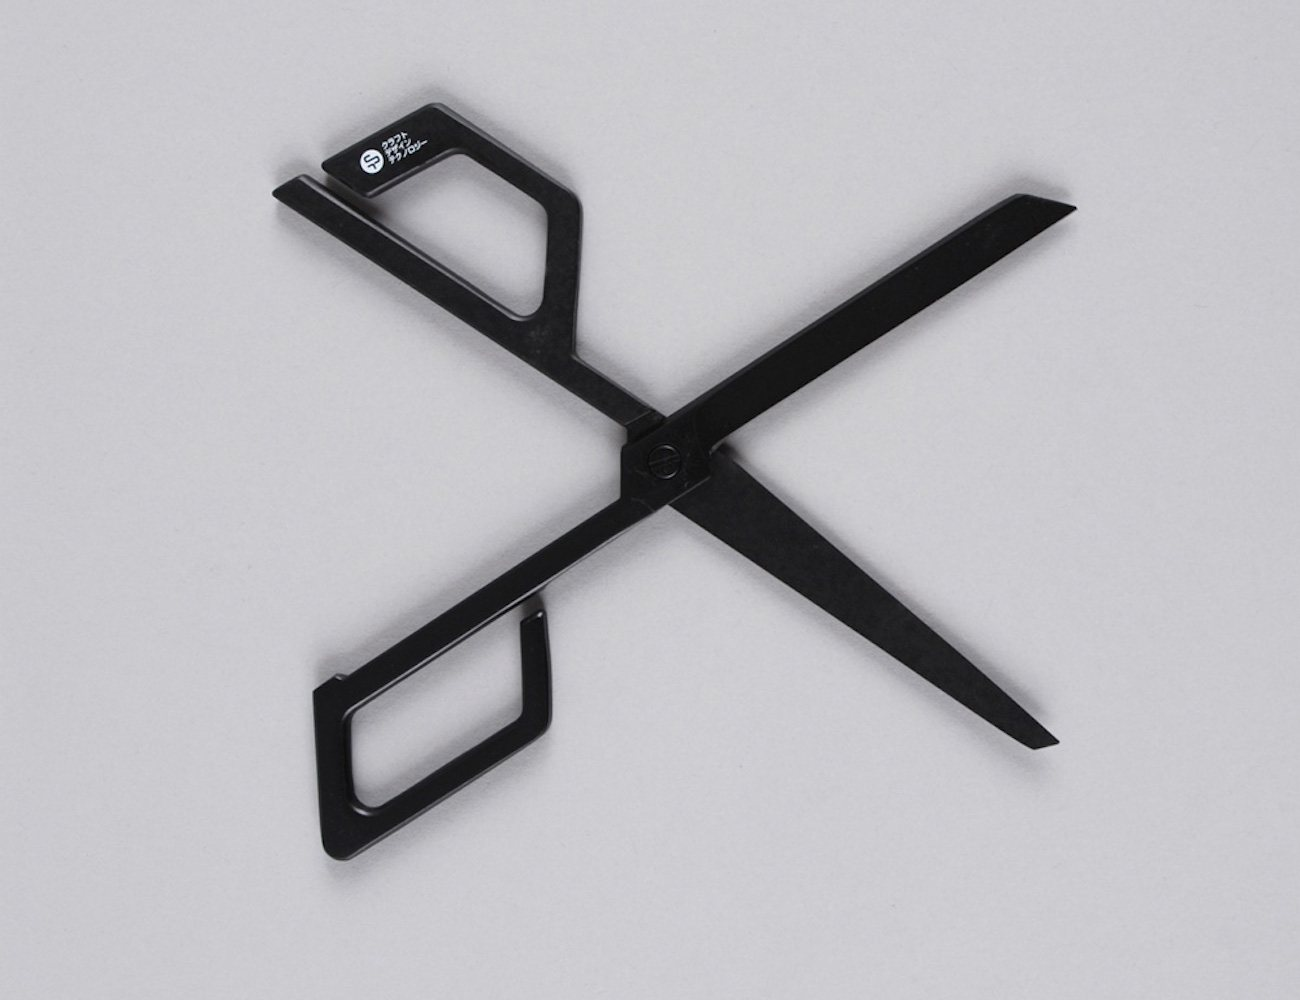 Black Scissors by Craft Design Technology